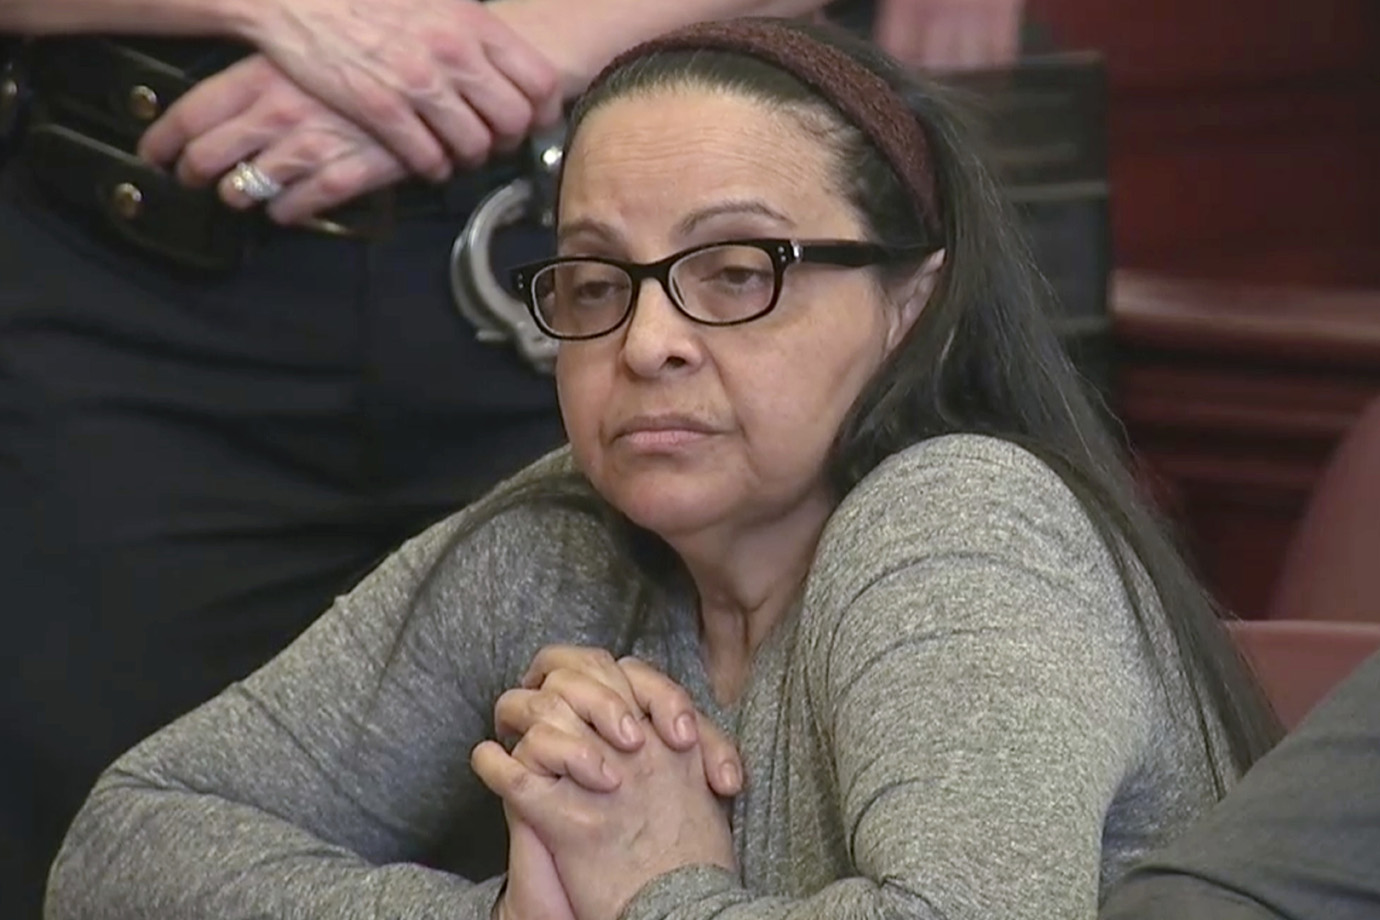 'You are evil': Mother breaks down at New York killer nanny trial